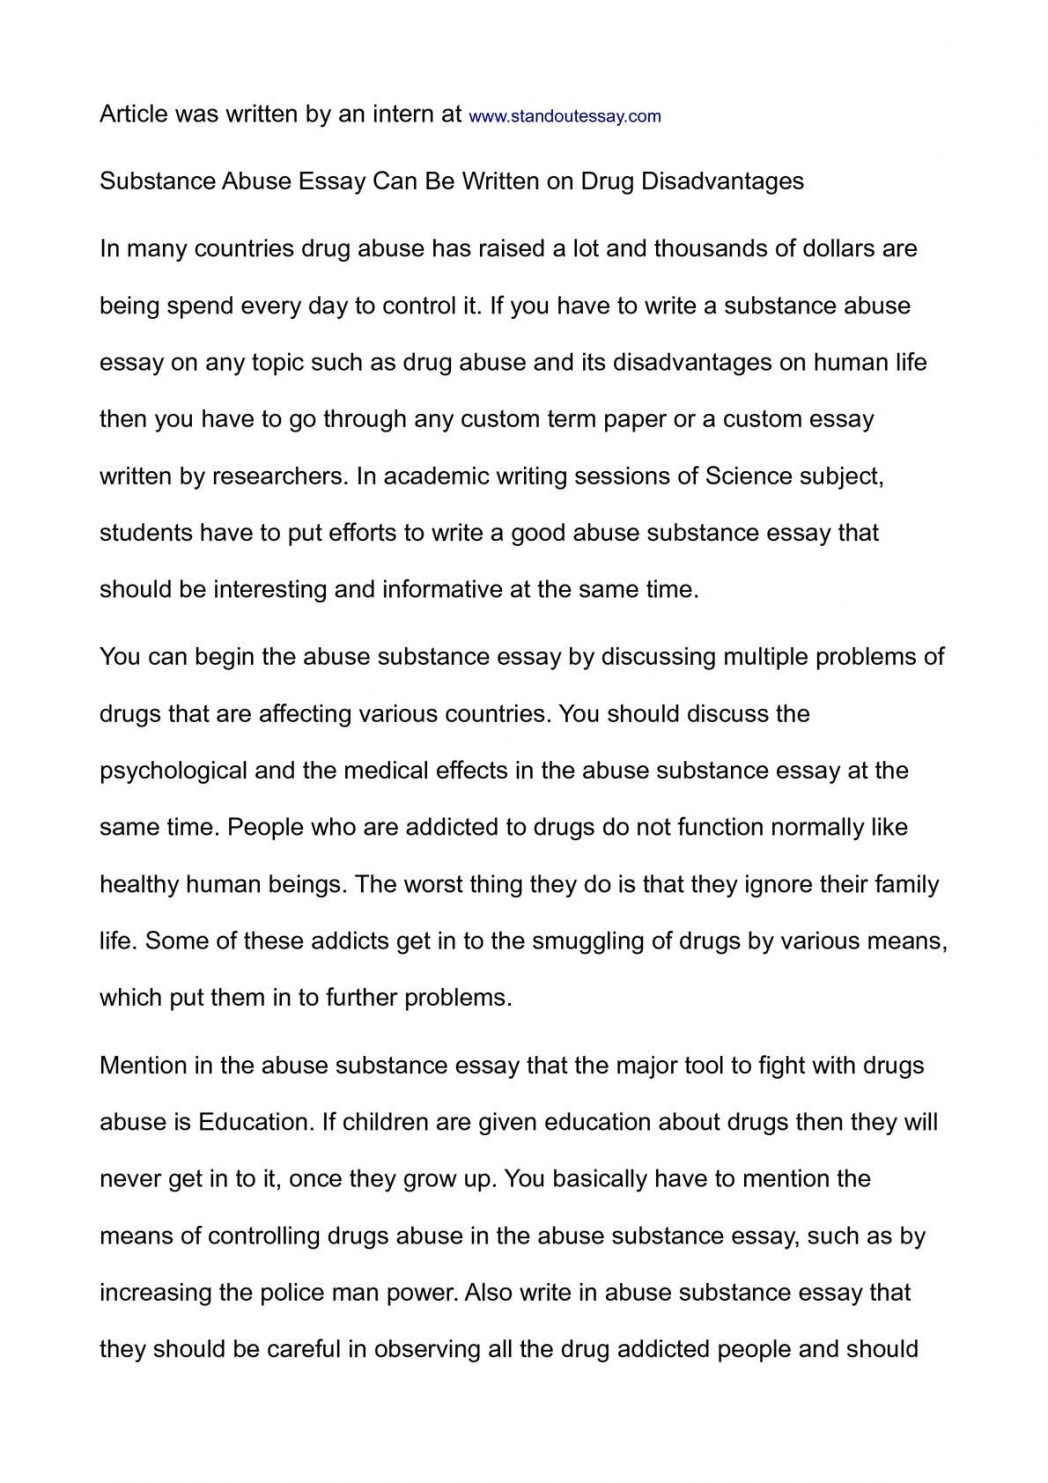 015 National Honor Society Essay Conclusion On Substance Abuse Junior Exampls Topics 1048x1483 Outstanding Application Example Structure High School Examples Full